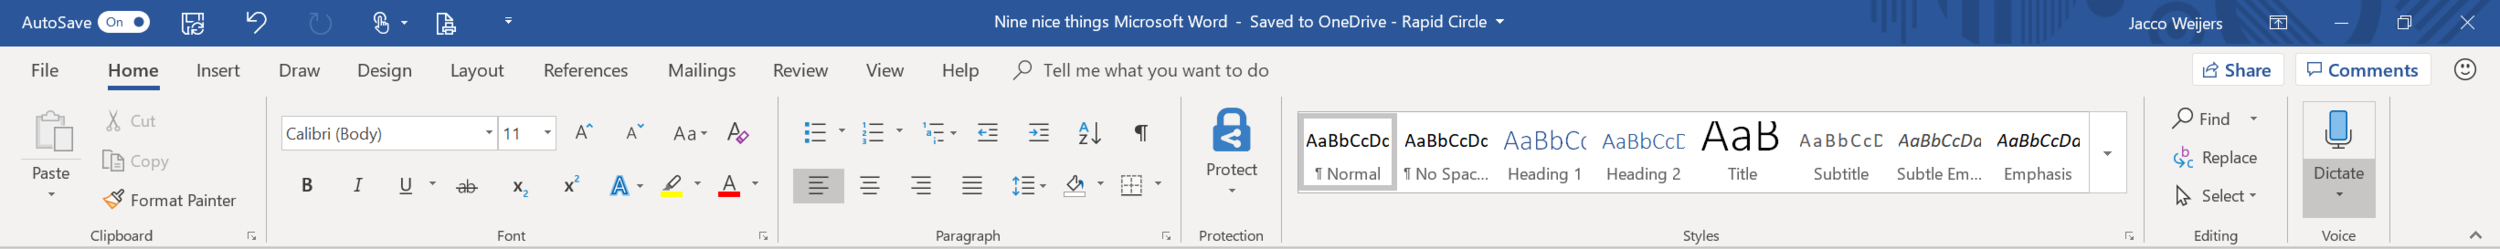 Microsoft Word dictate button.PNG